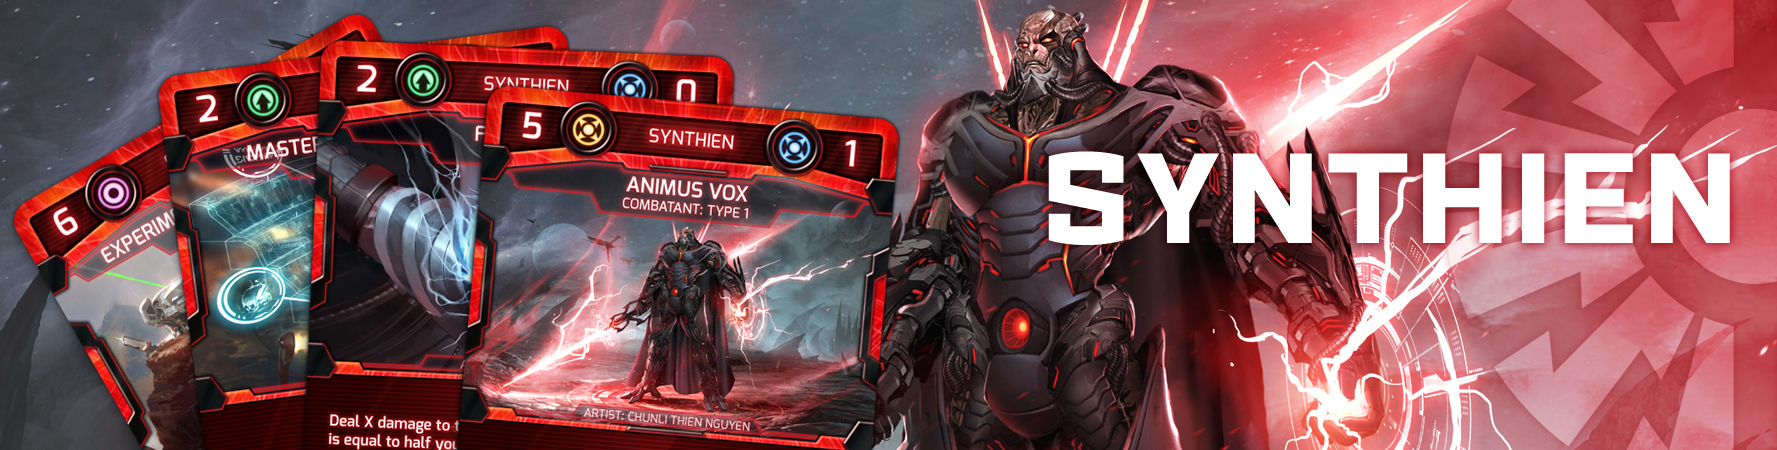 Click to view the Synthien Card Gallery